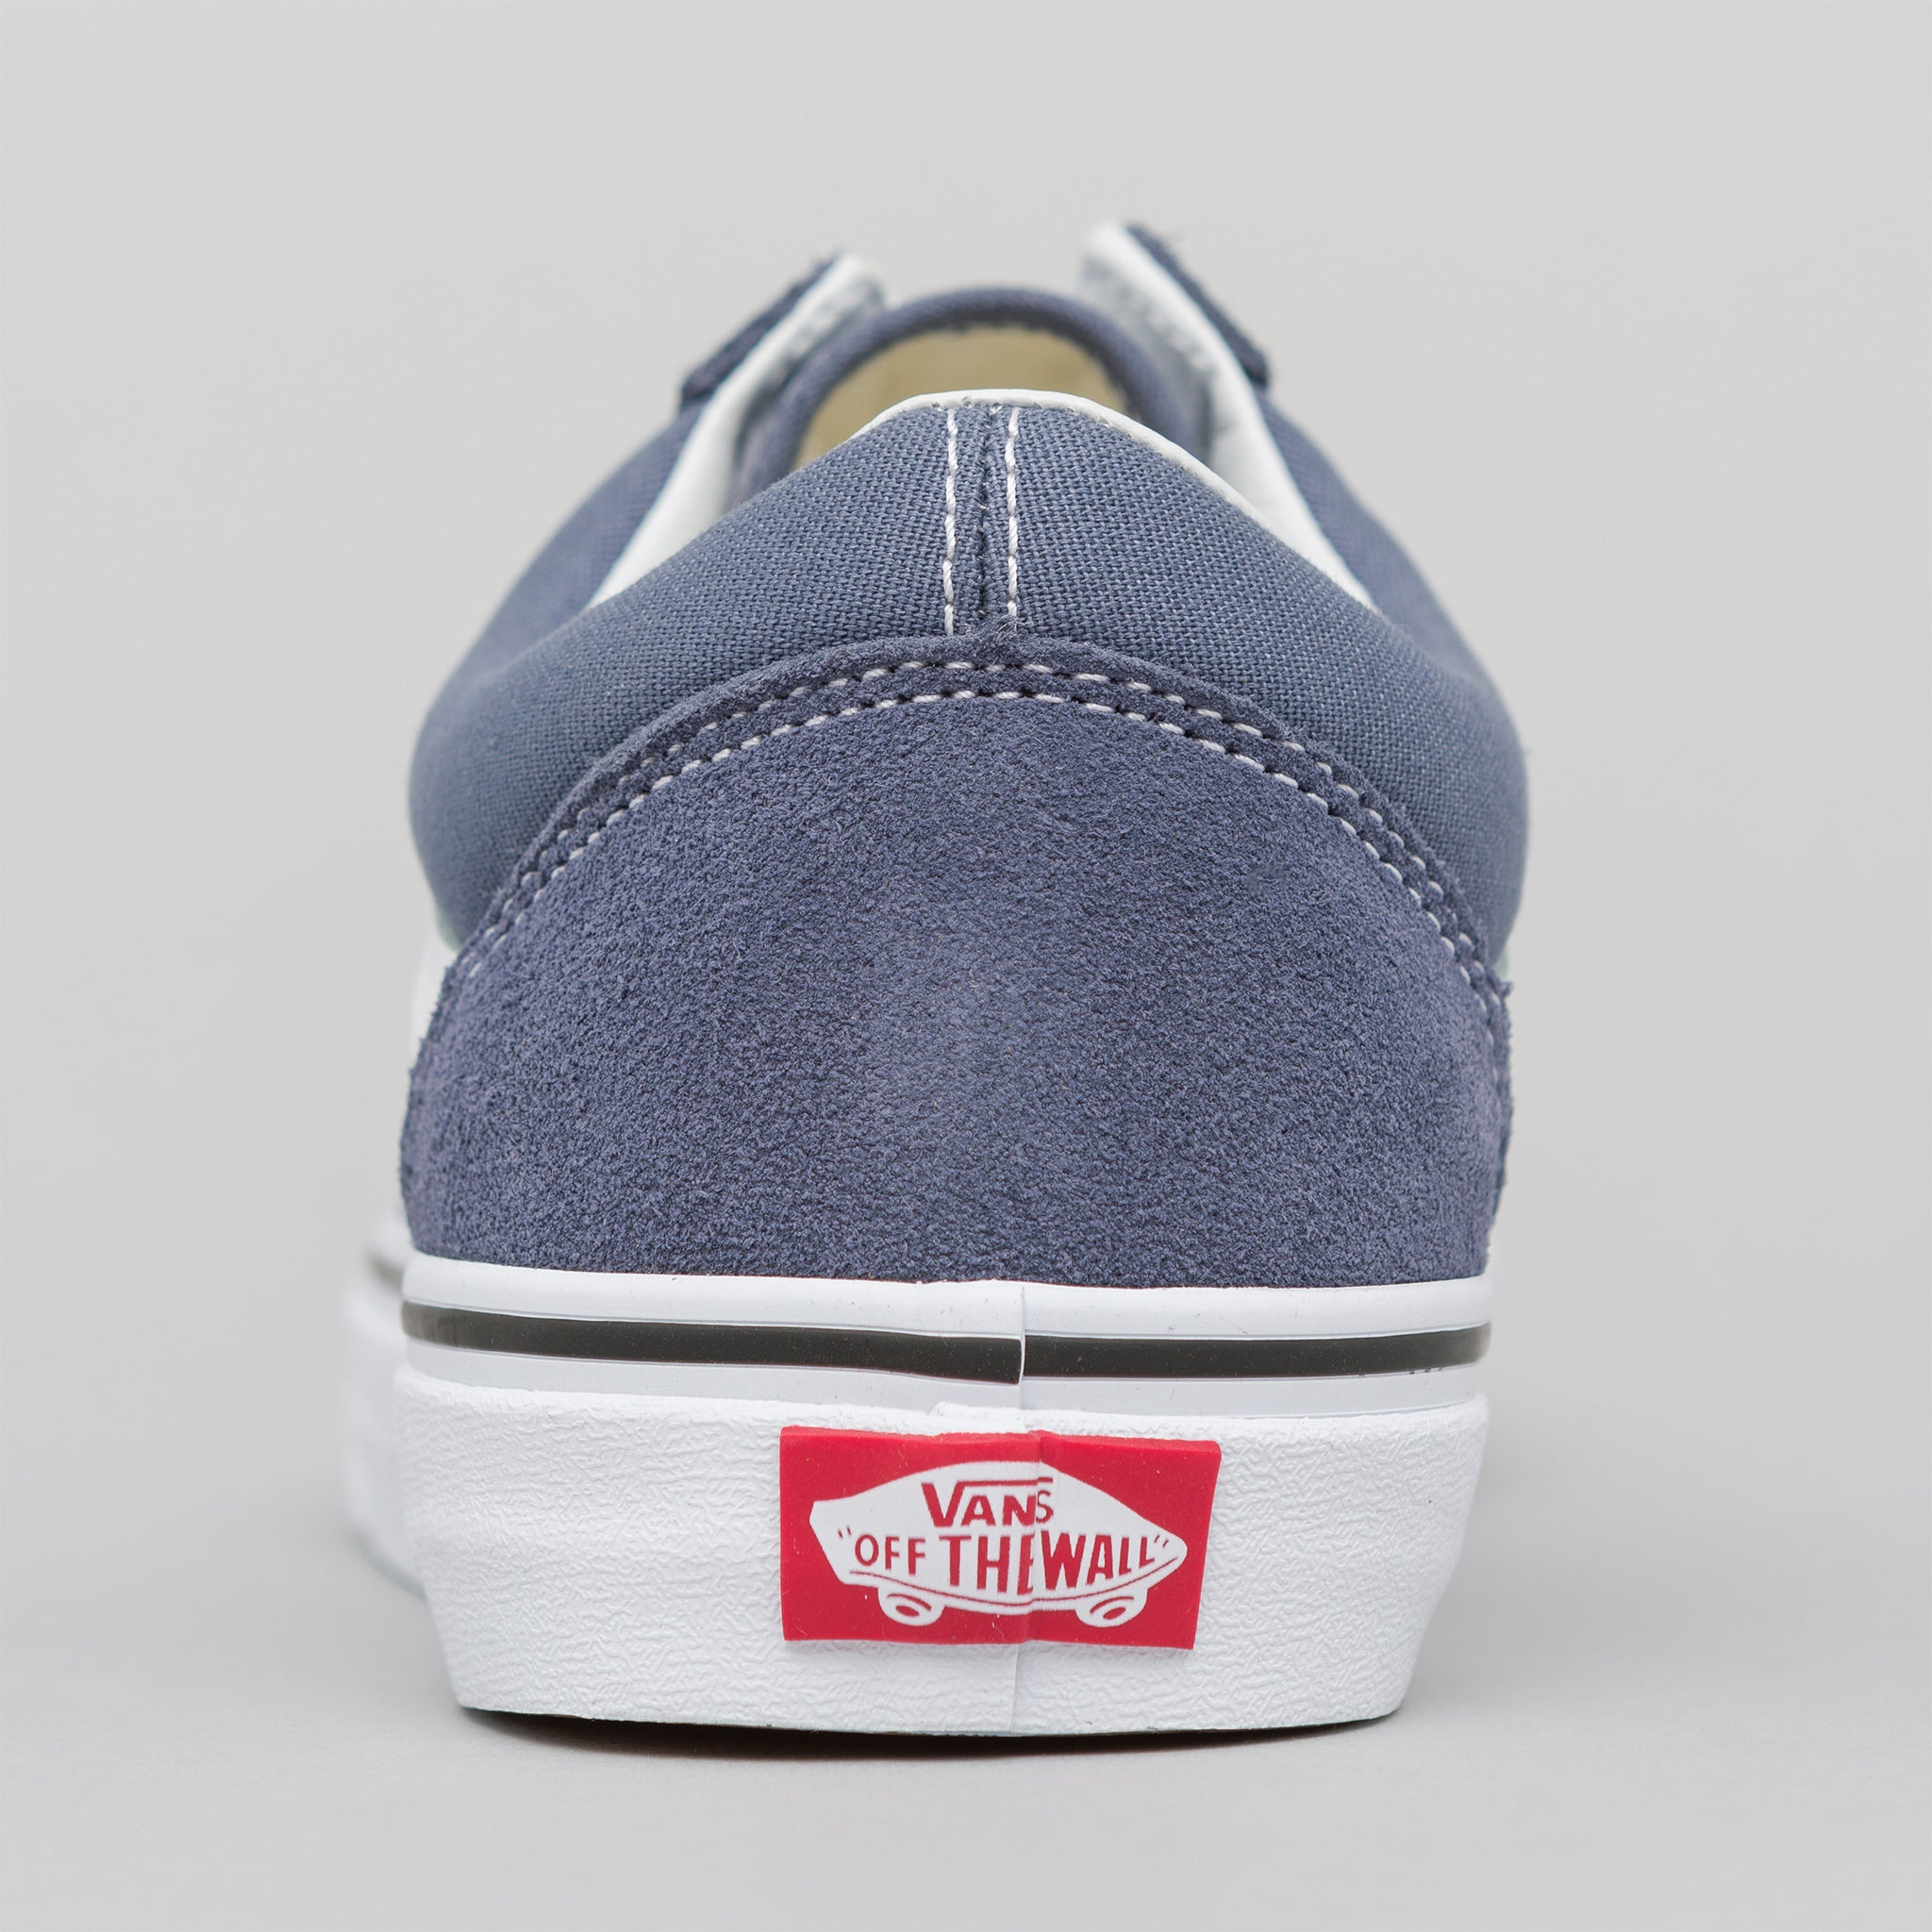 a010d2a17e8 Vans Old Skool in Grisaille True White